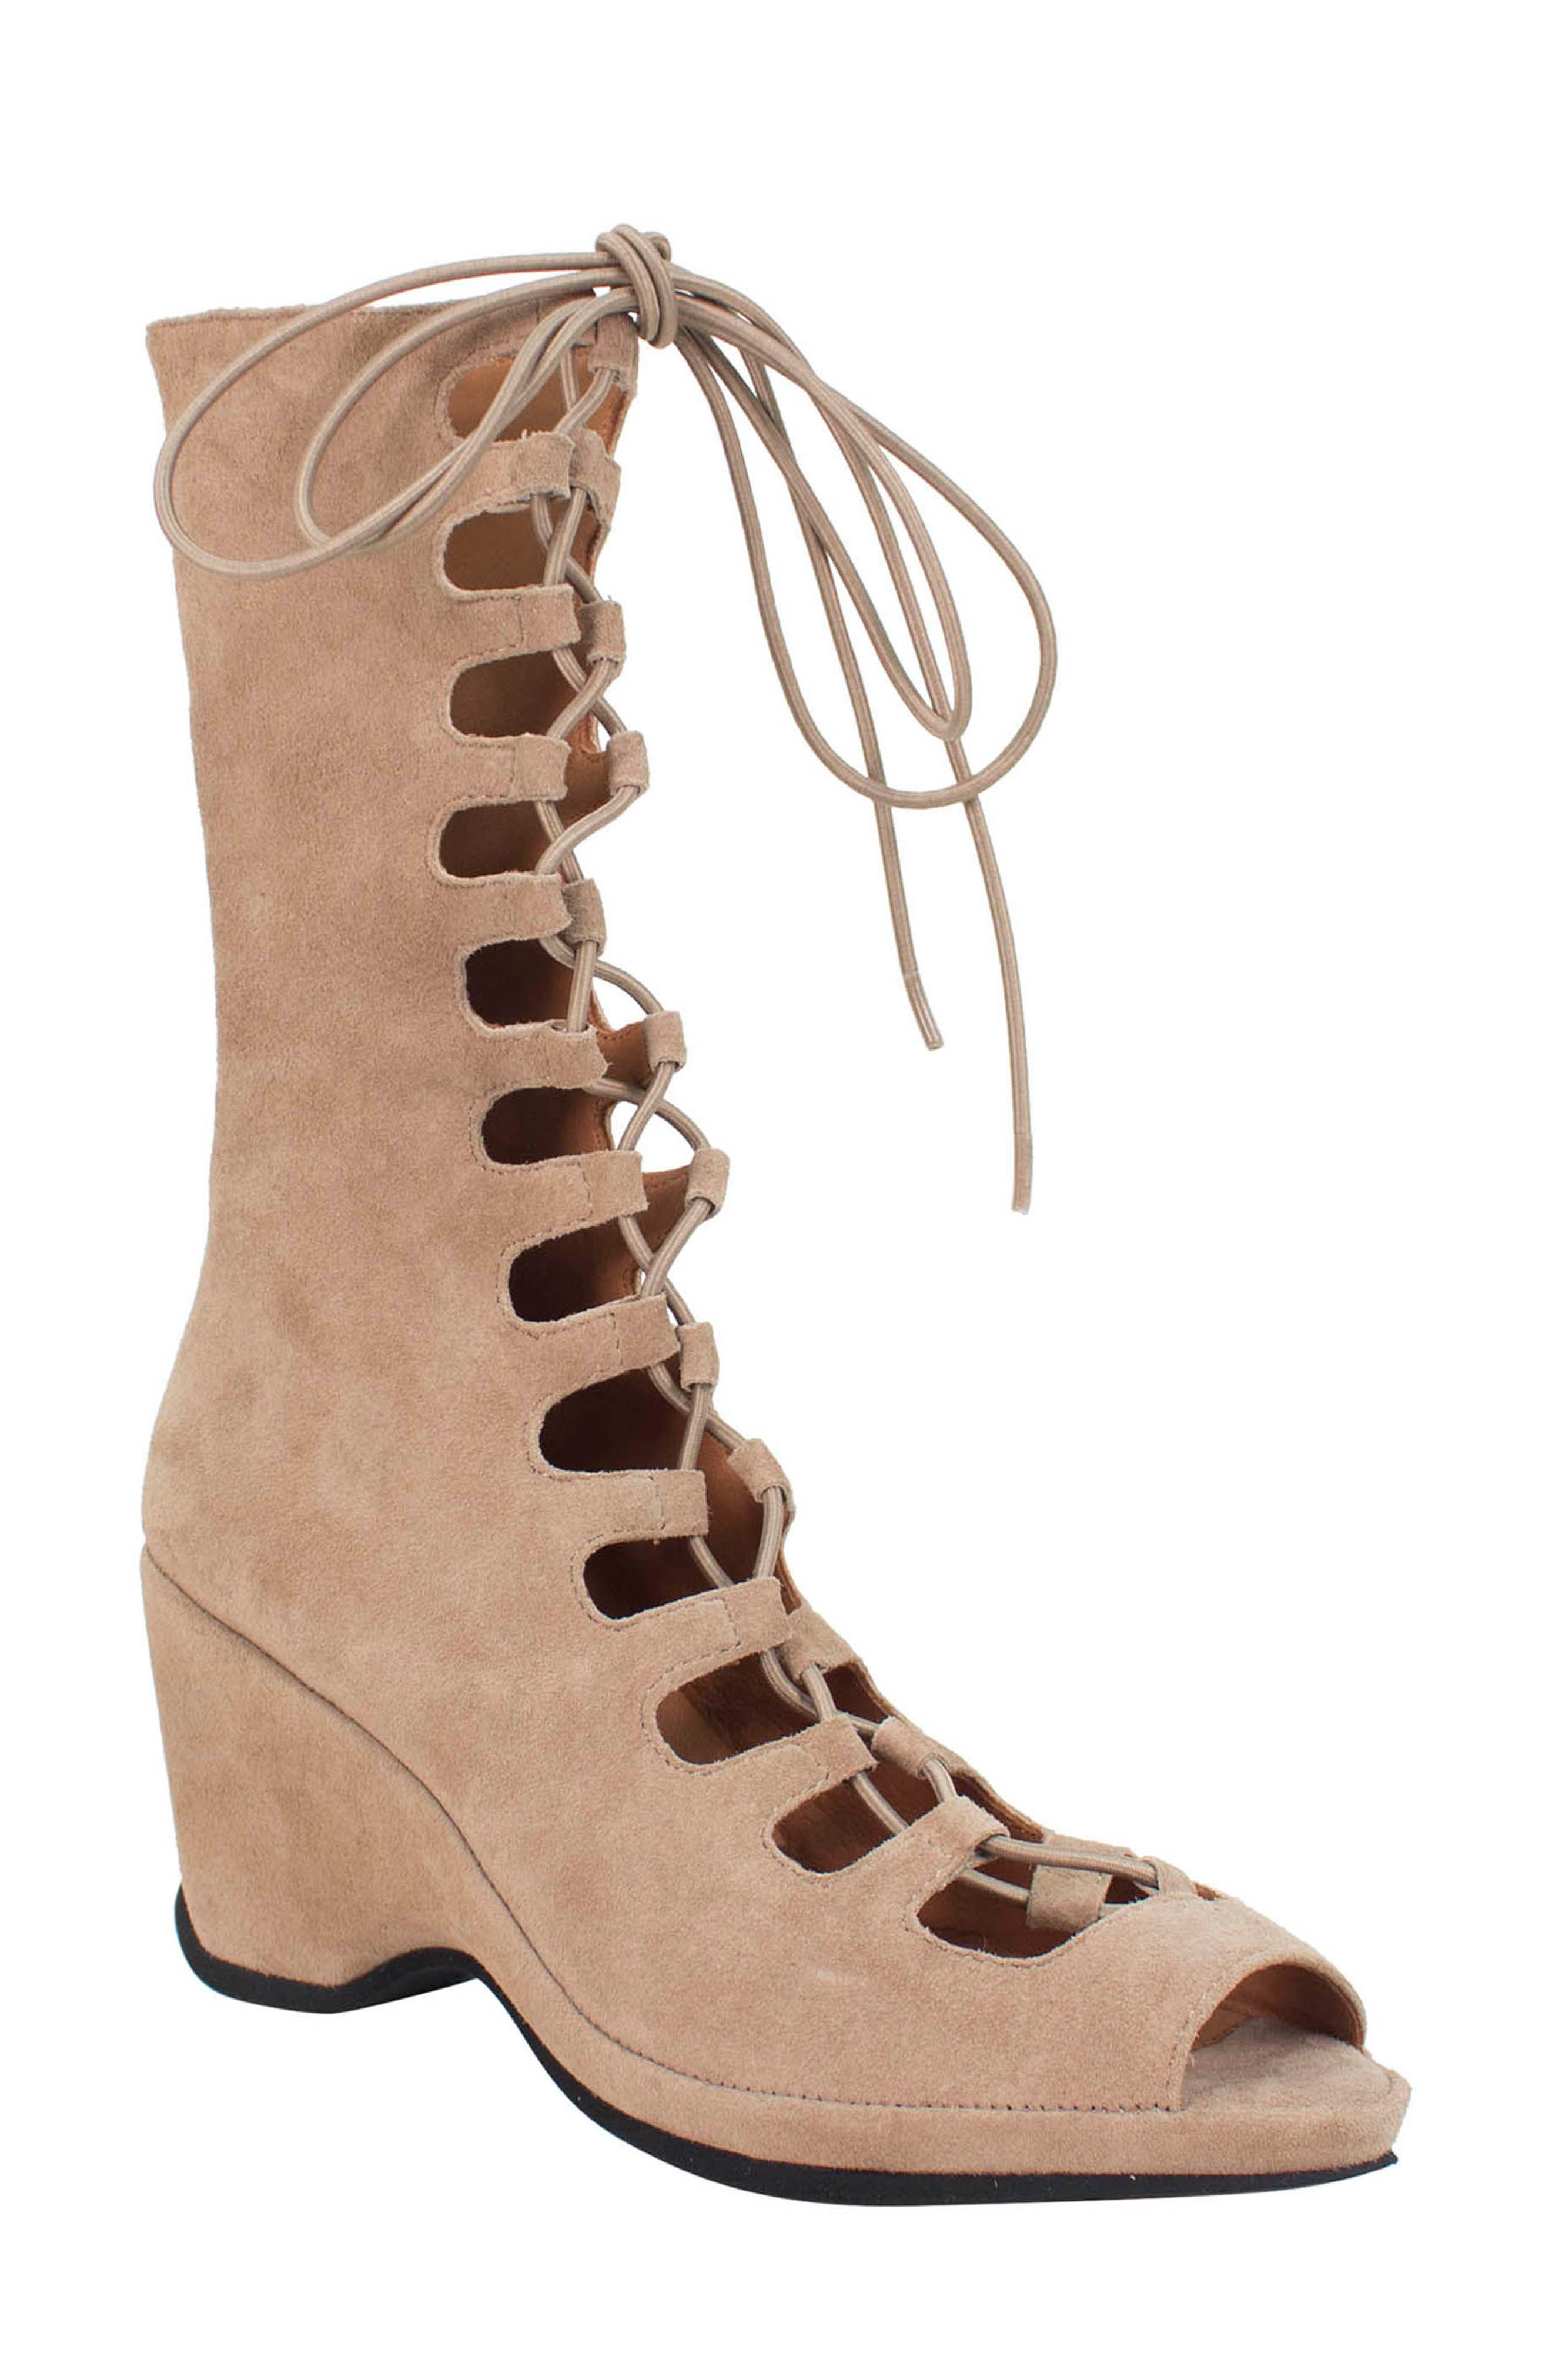 Othello Lace-Up Sandal,                         Main,                         color, Taupe Suede